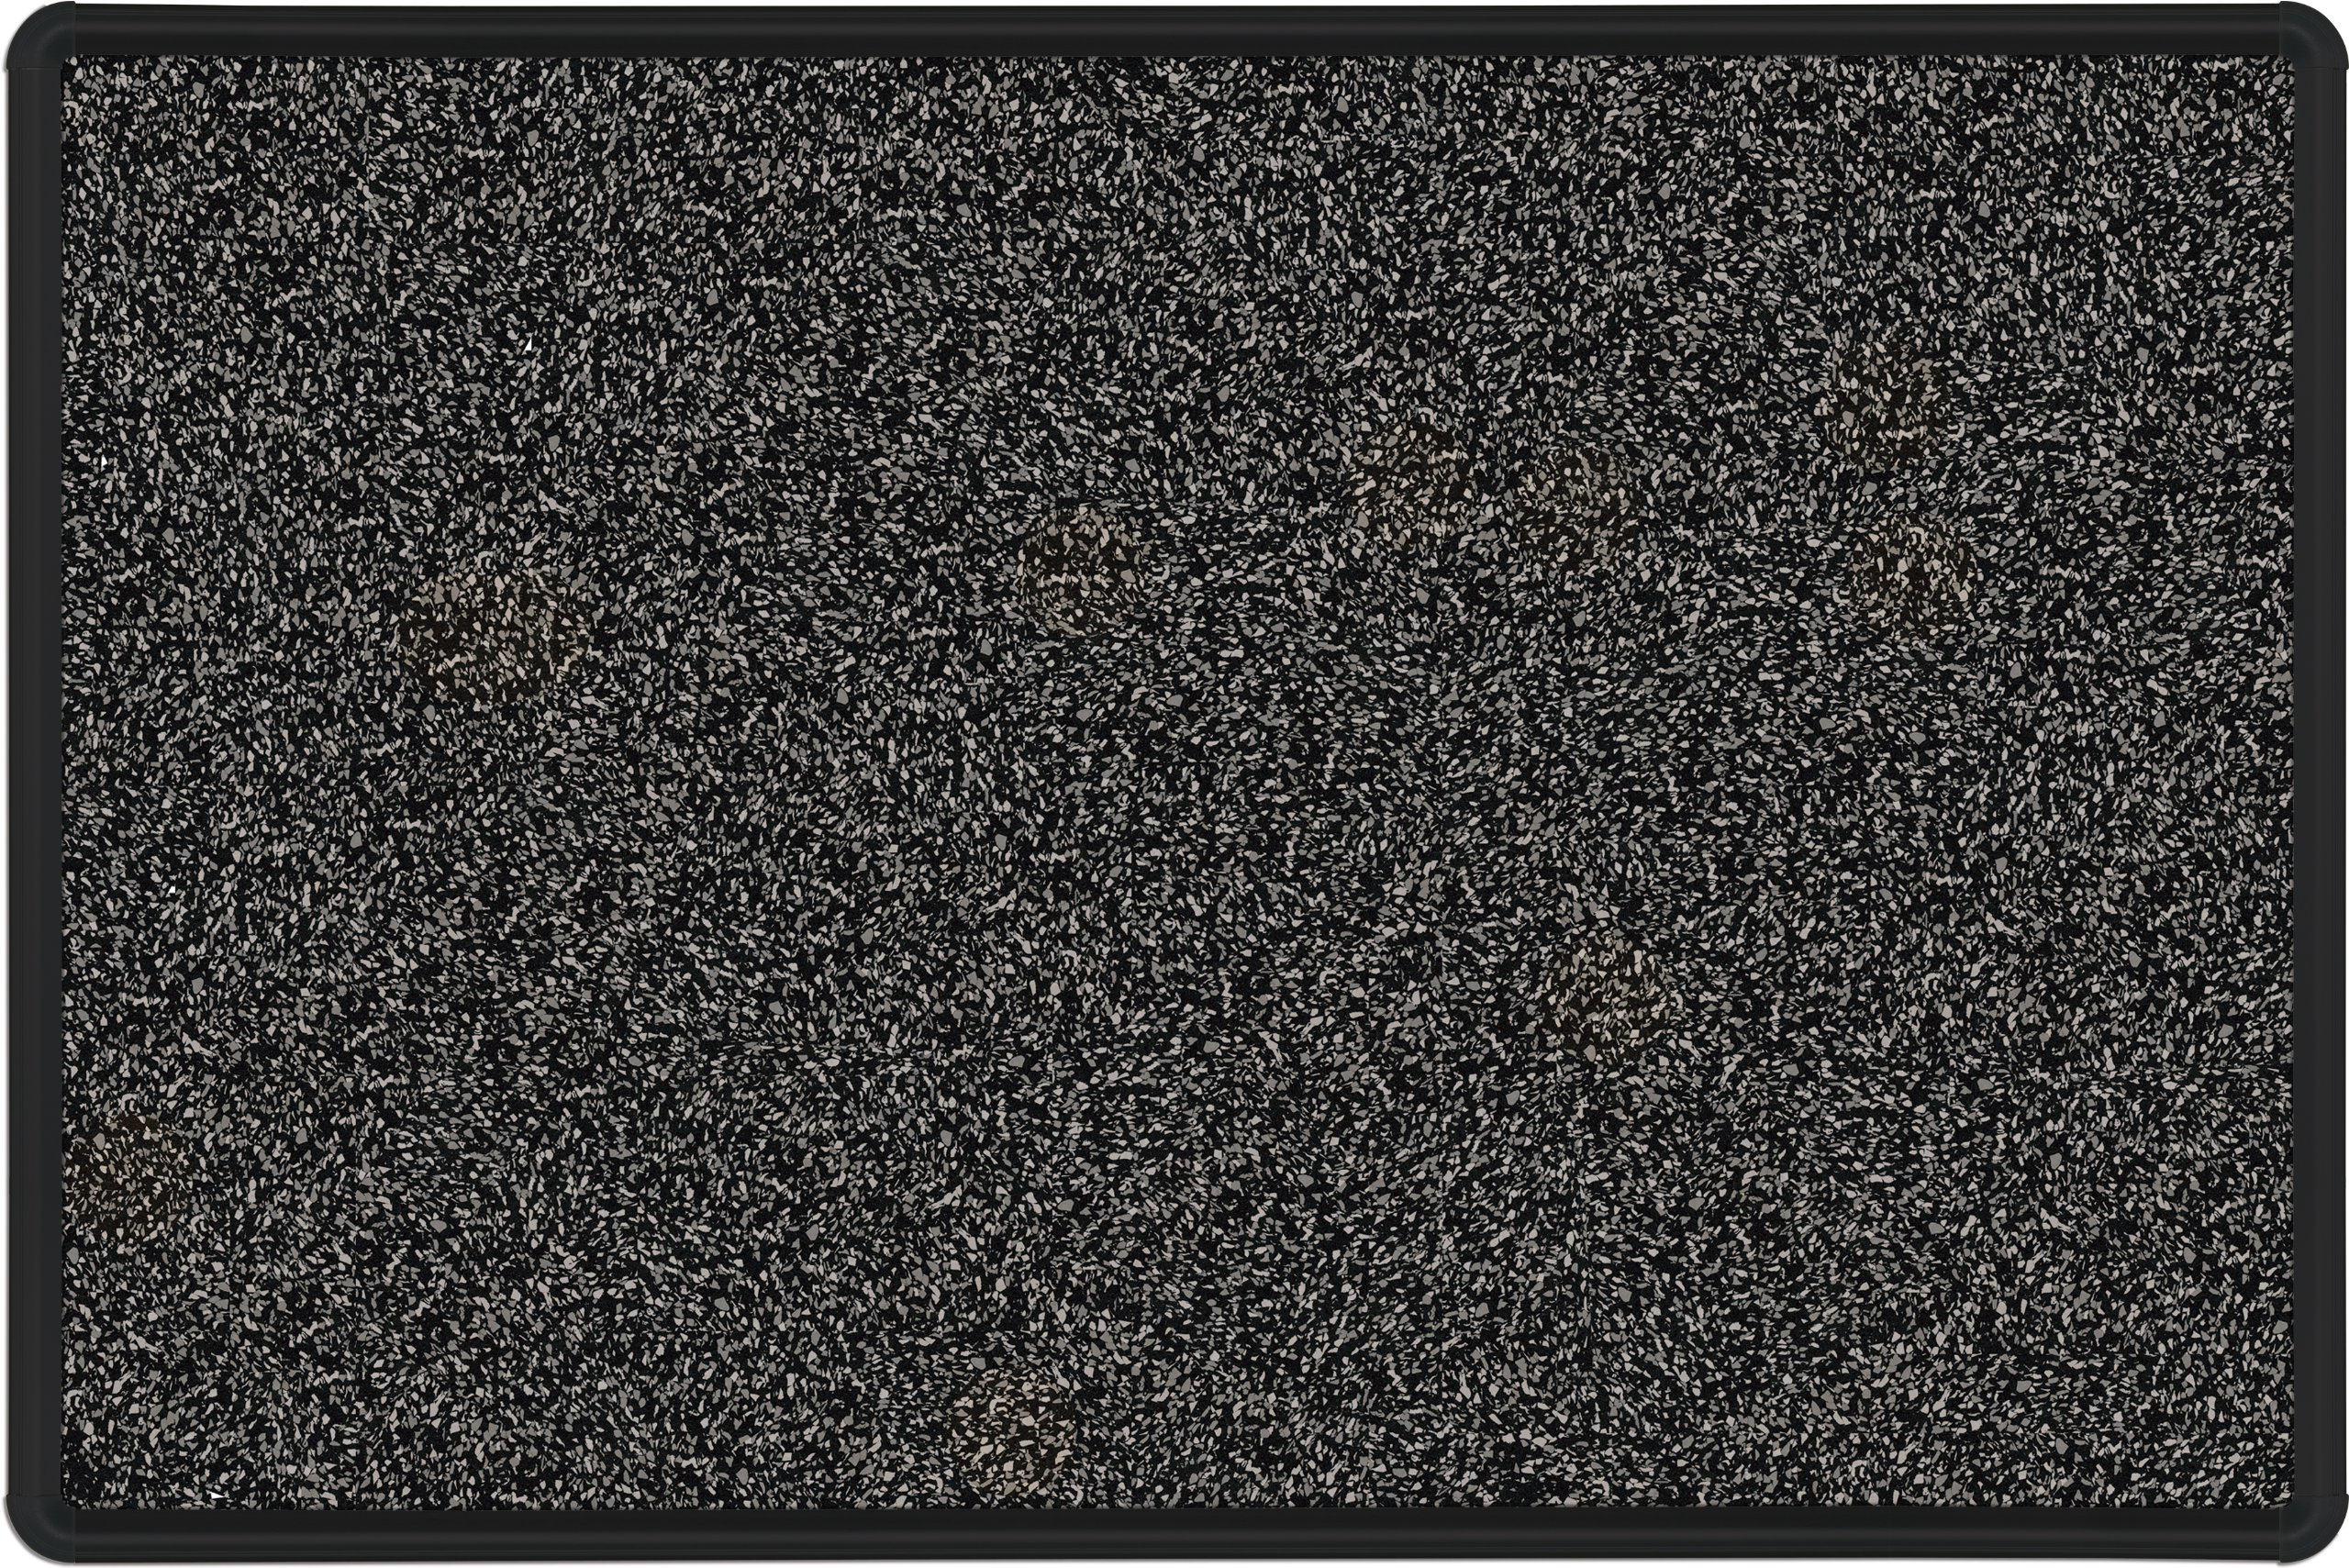 Best-Rite Presidential Trim Rubber-Tak Tackboard, Black Trim, 4 x 8 Feet, Black (321PH-T1-96)